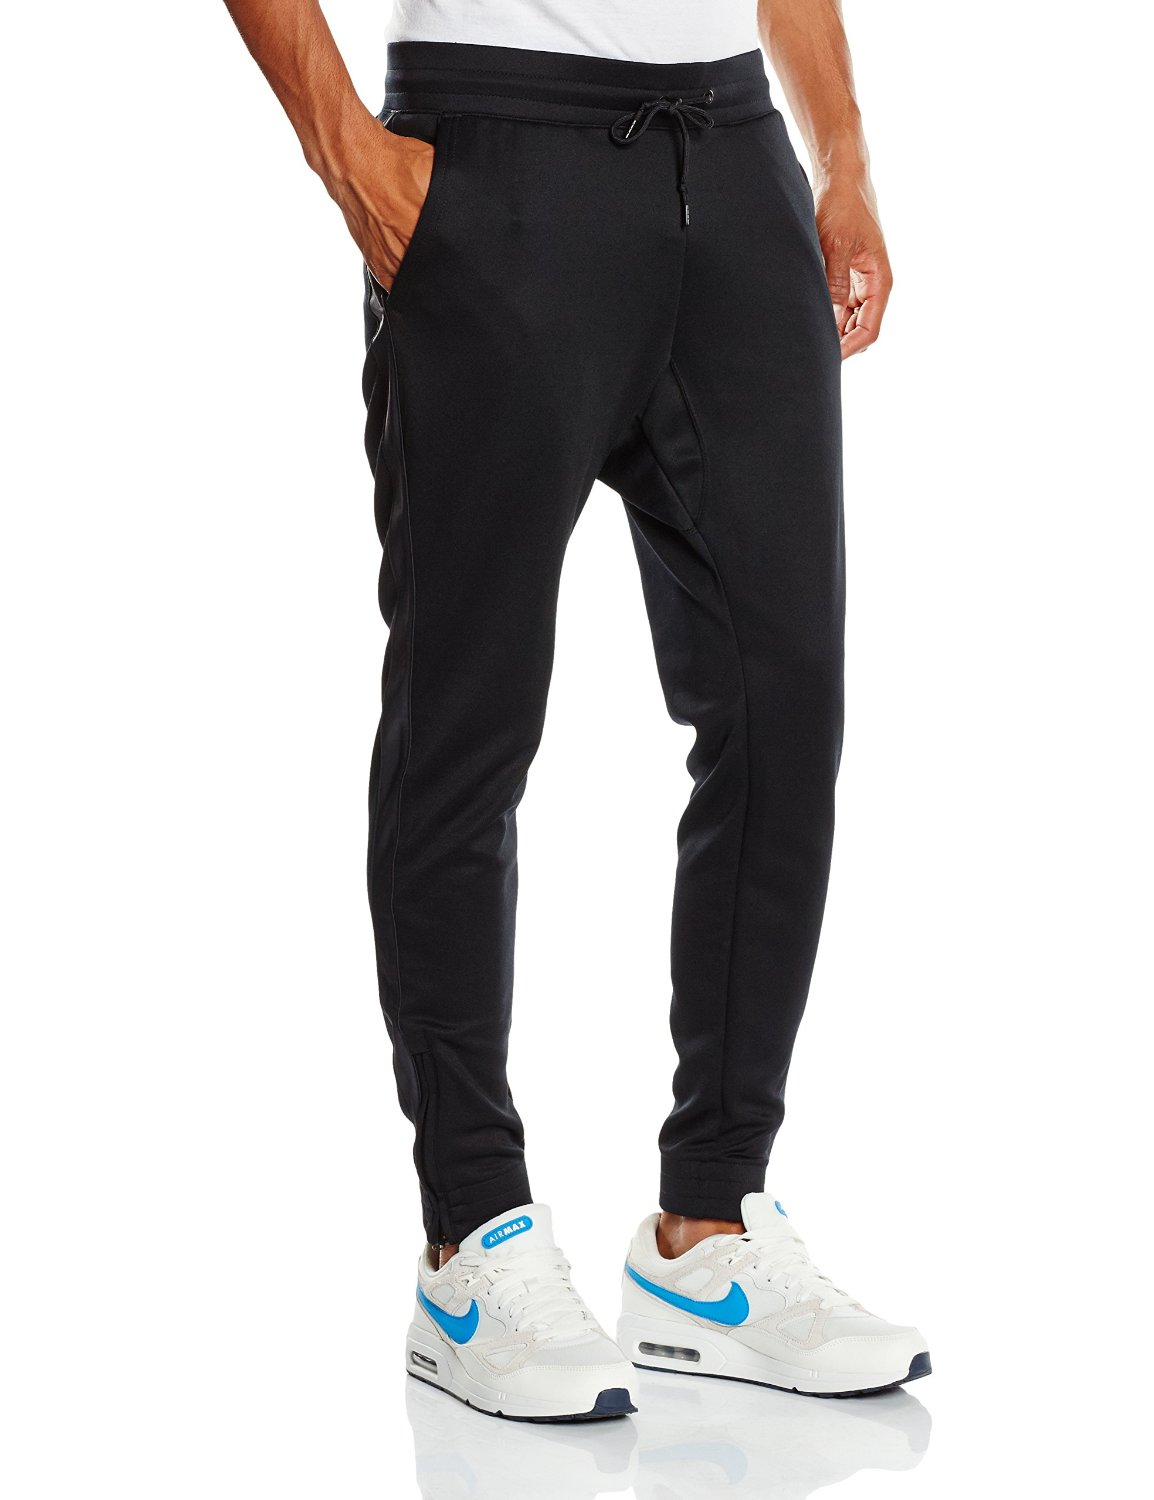 da212ca0439a Get Quotations · Men s Nike F.C. Libero Football Pants Black 687982-010 ...